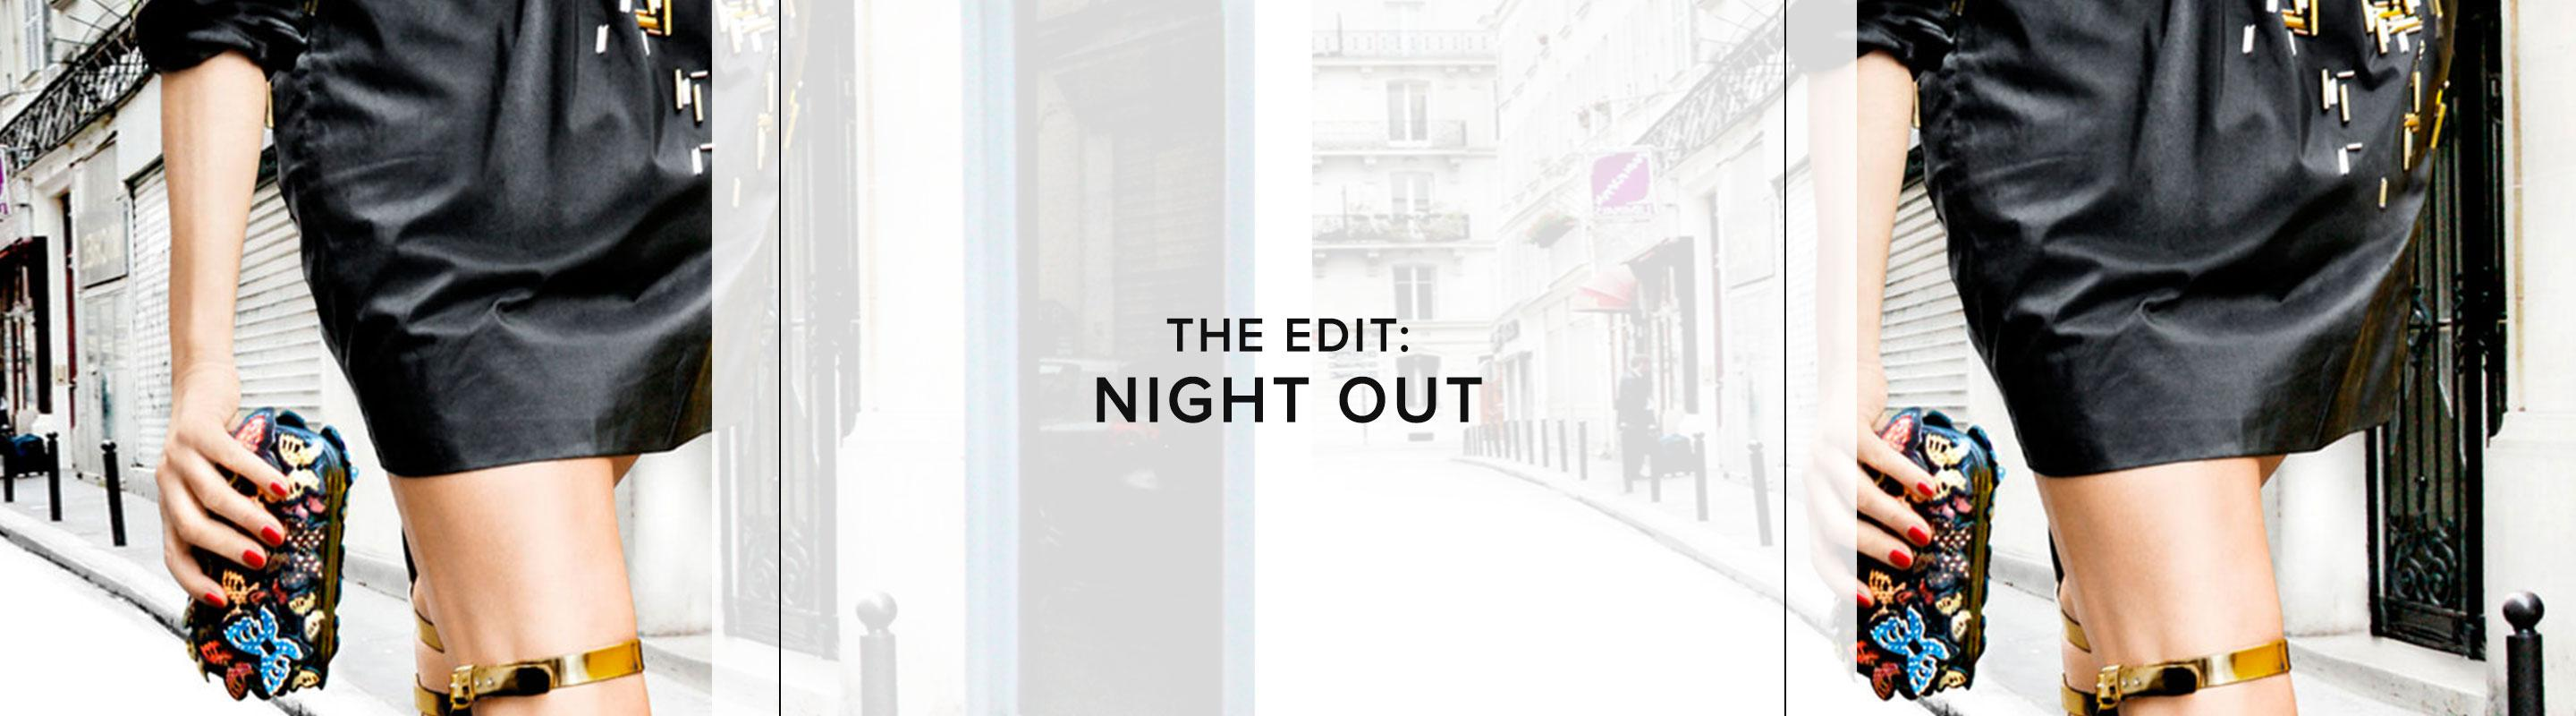 The Edit: Night Out